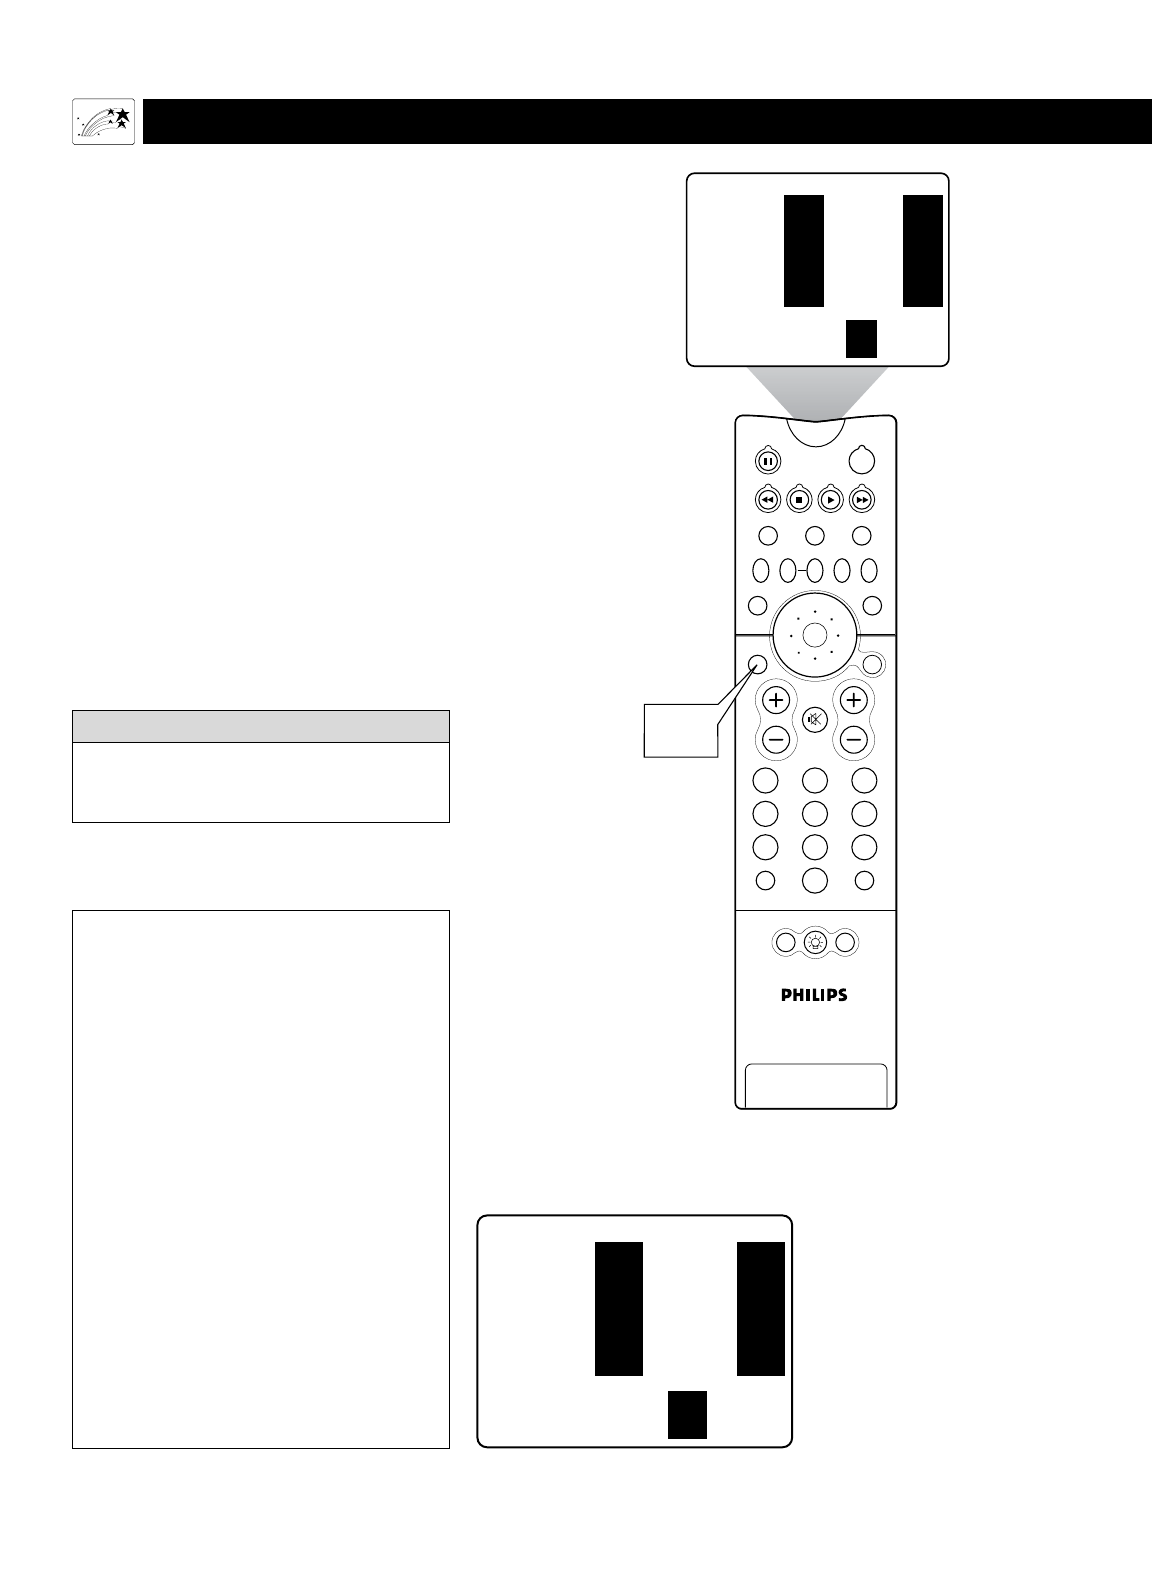 Page 52 of Philips Projection Television 55PW9363 User